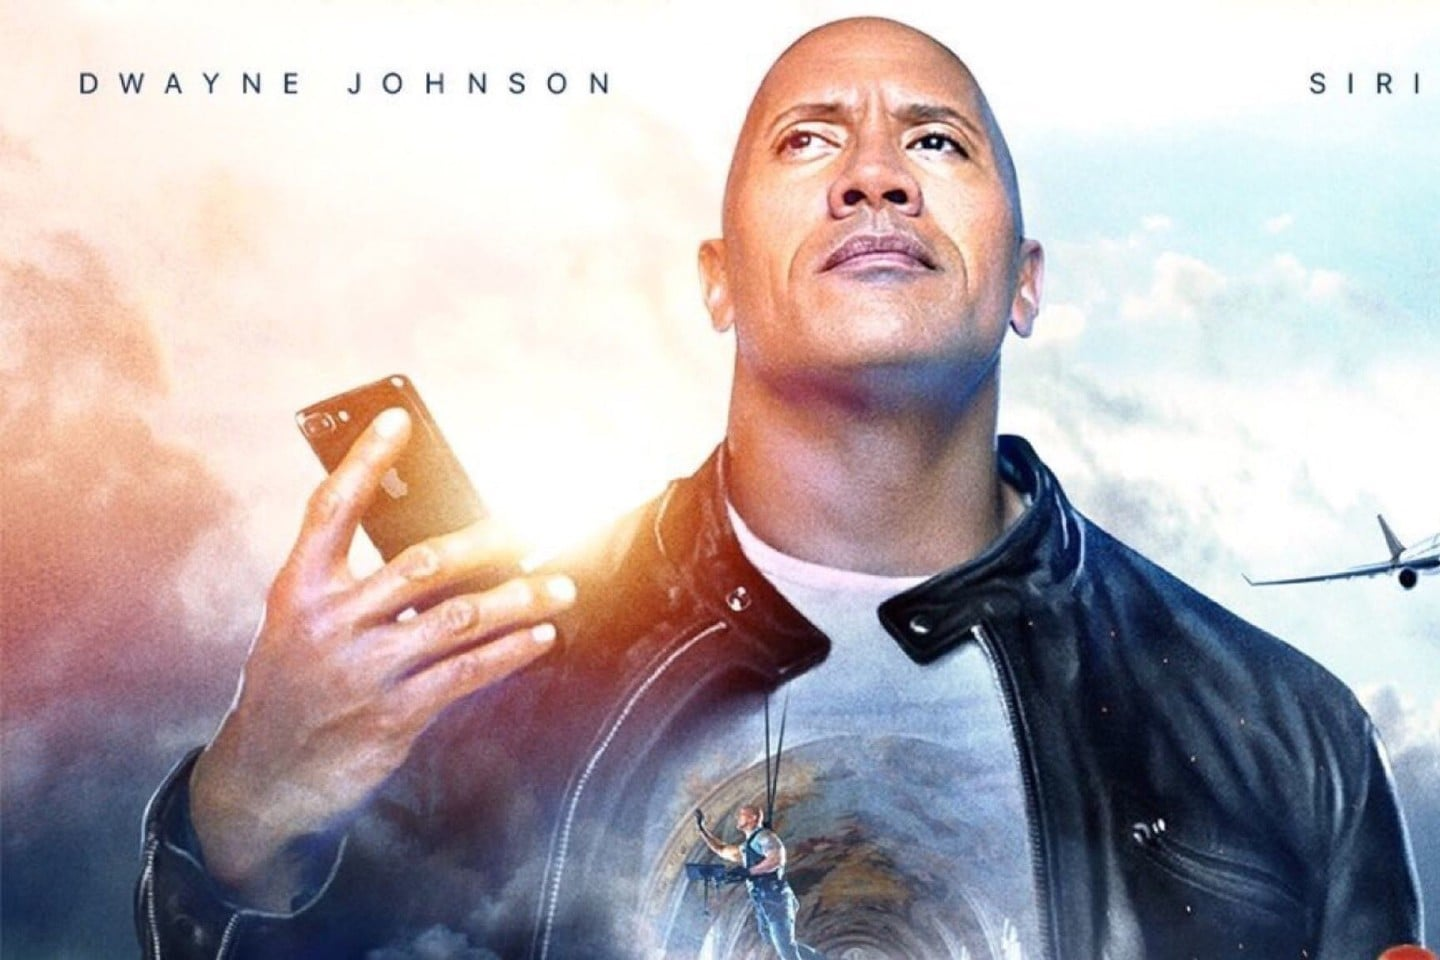 Dwayne Johnson Announces New Movie With Apple's Siri As Co-Star